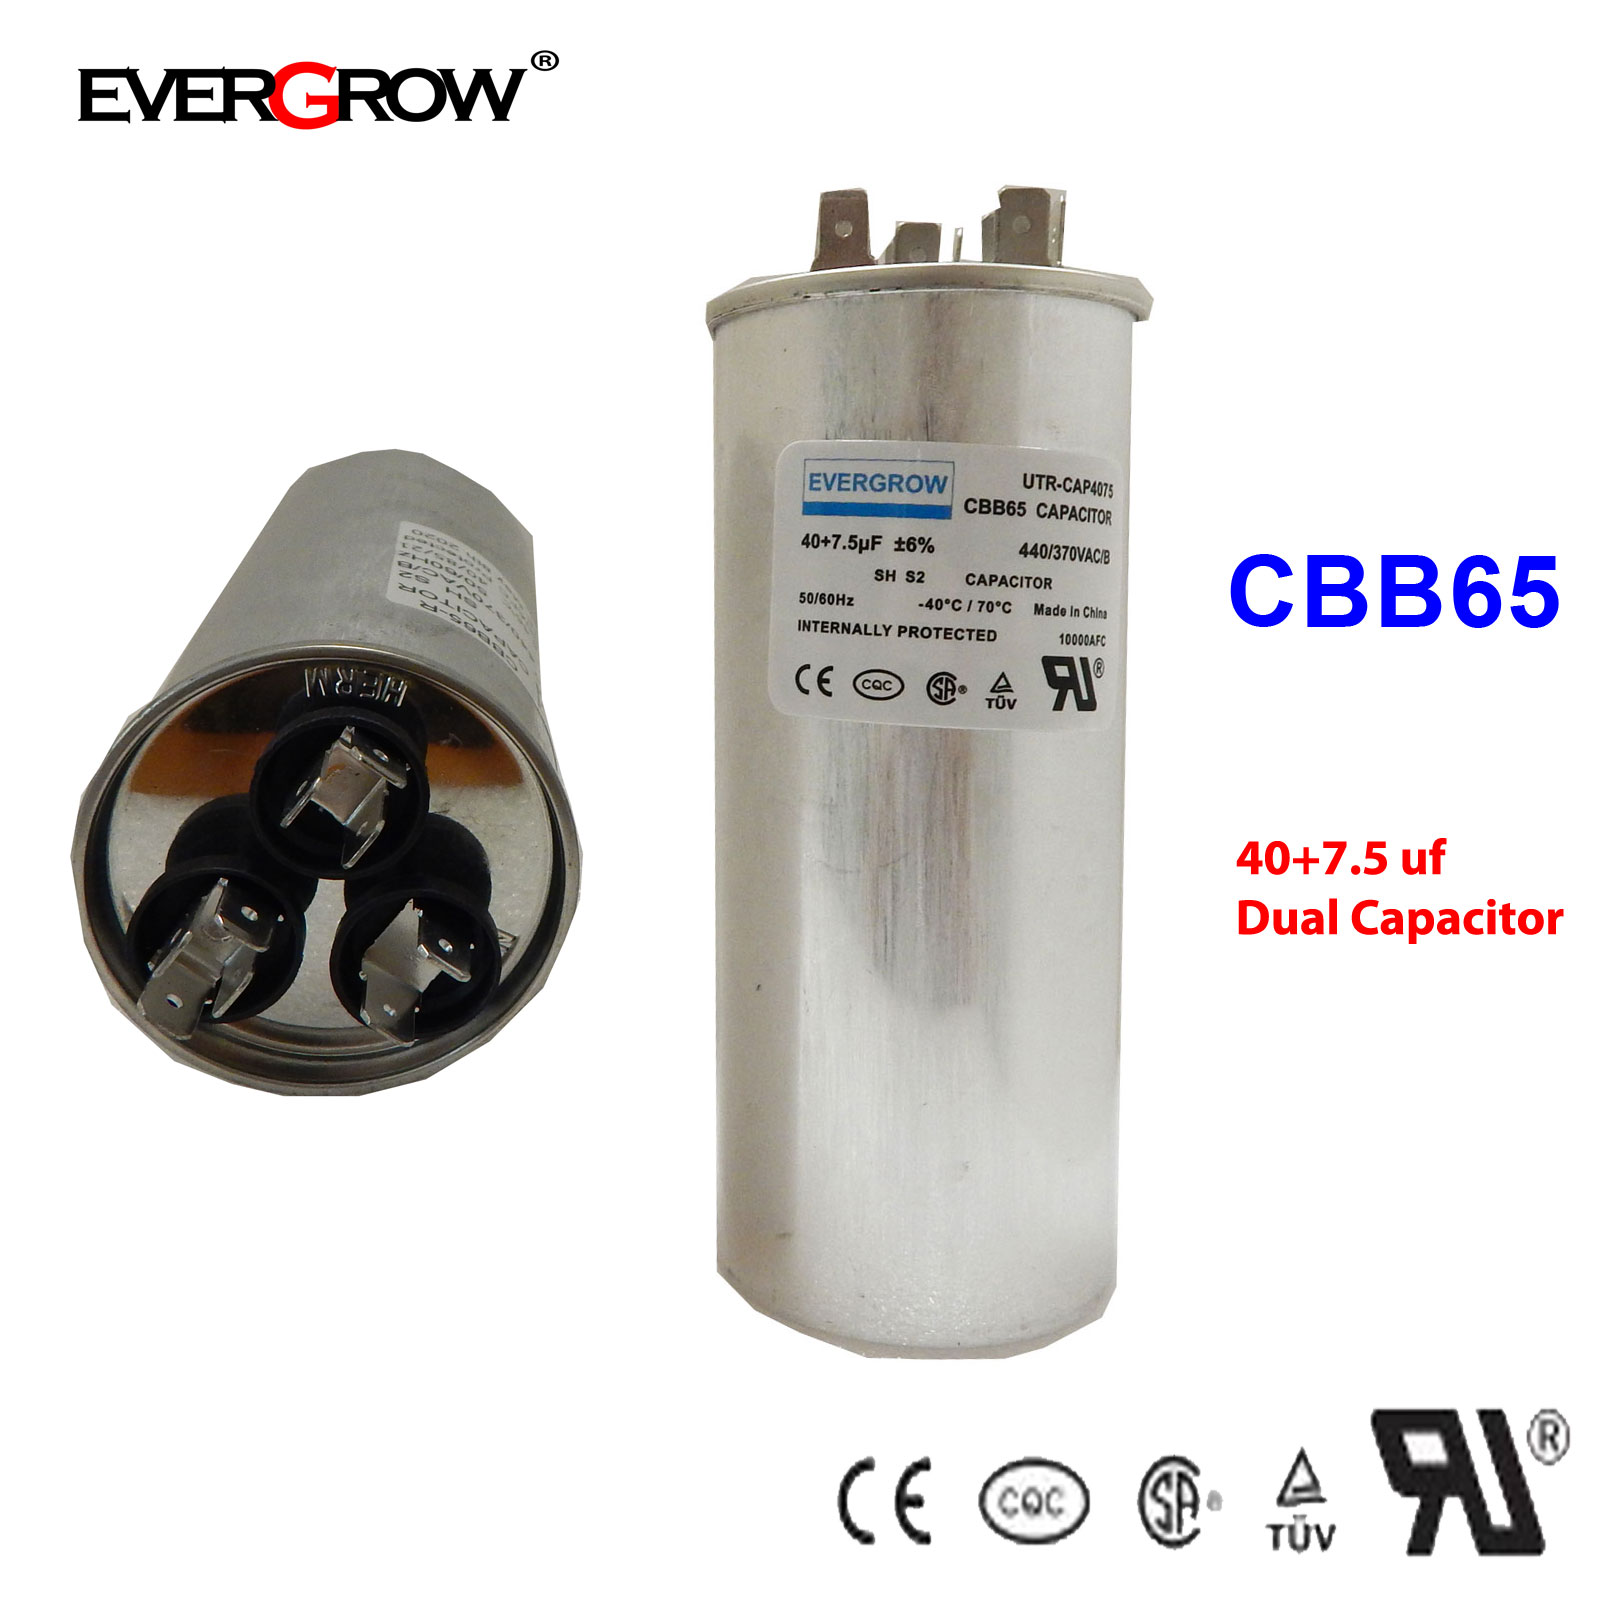 45+7.5 uF MFD Motor Dual Run Capacitor for Carrier Goodman Air Conditioner UL CE